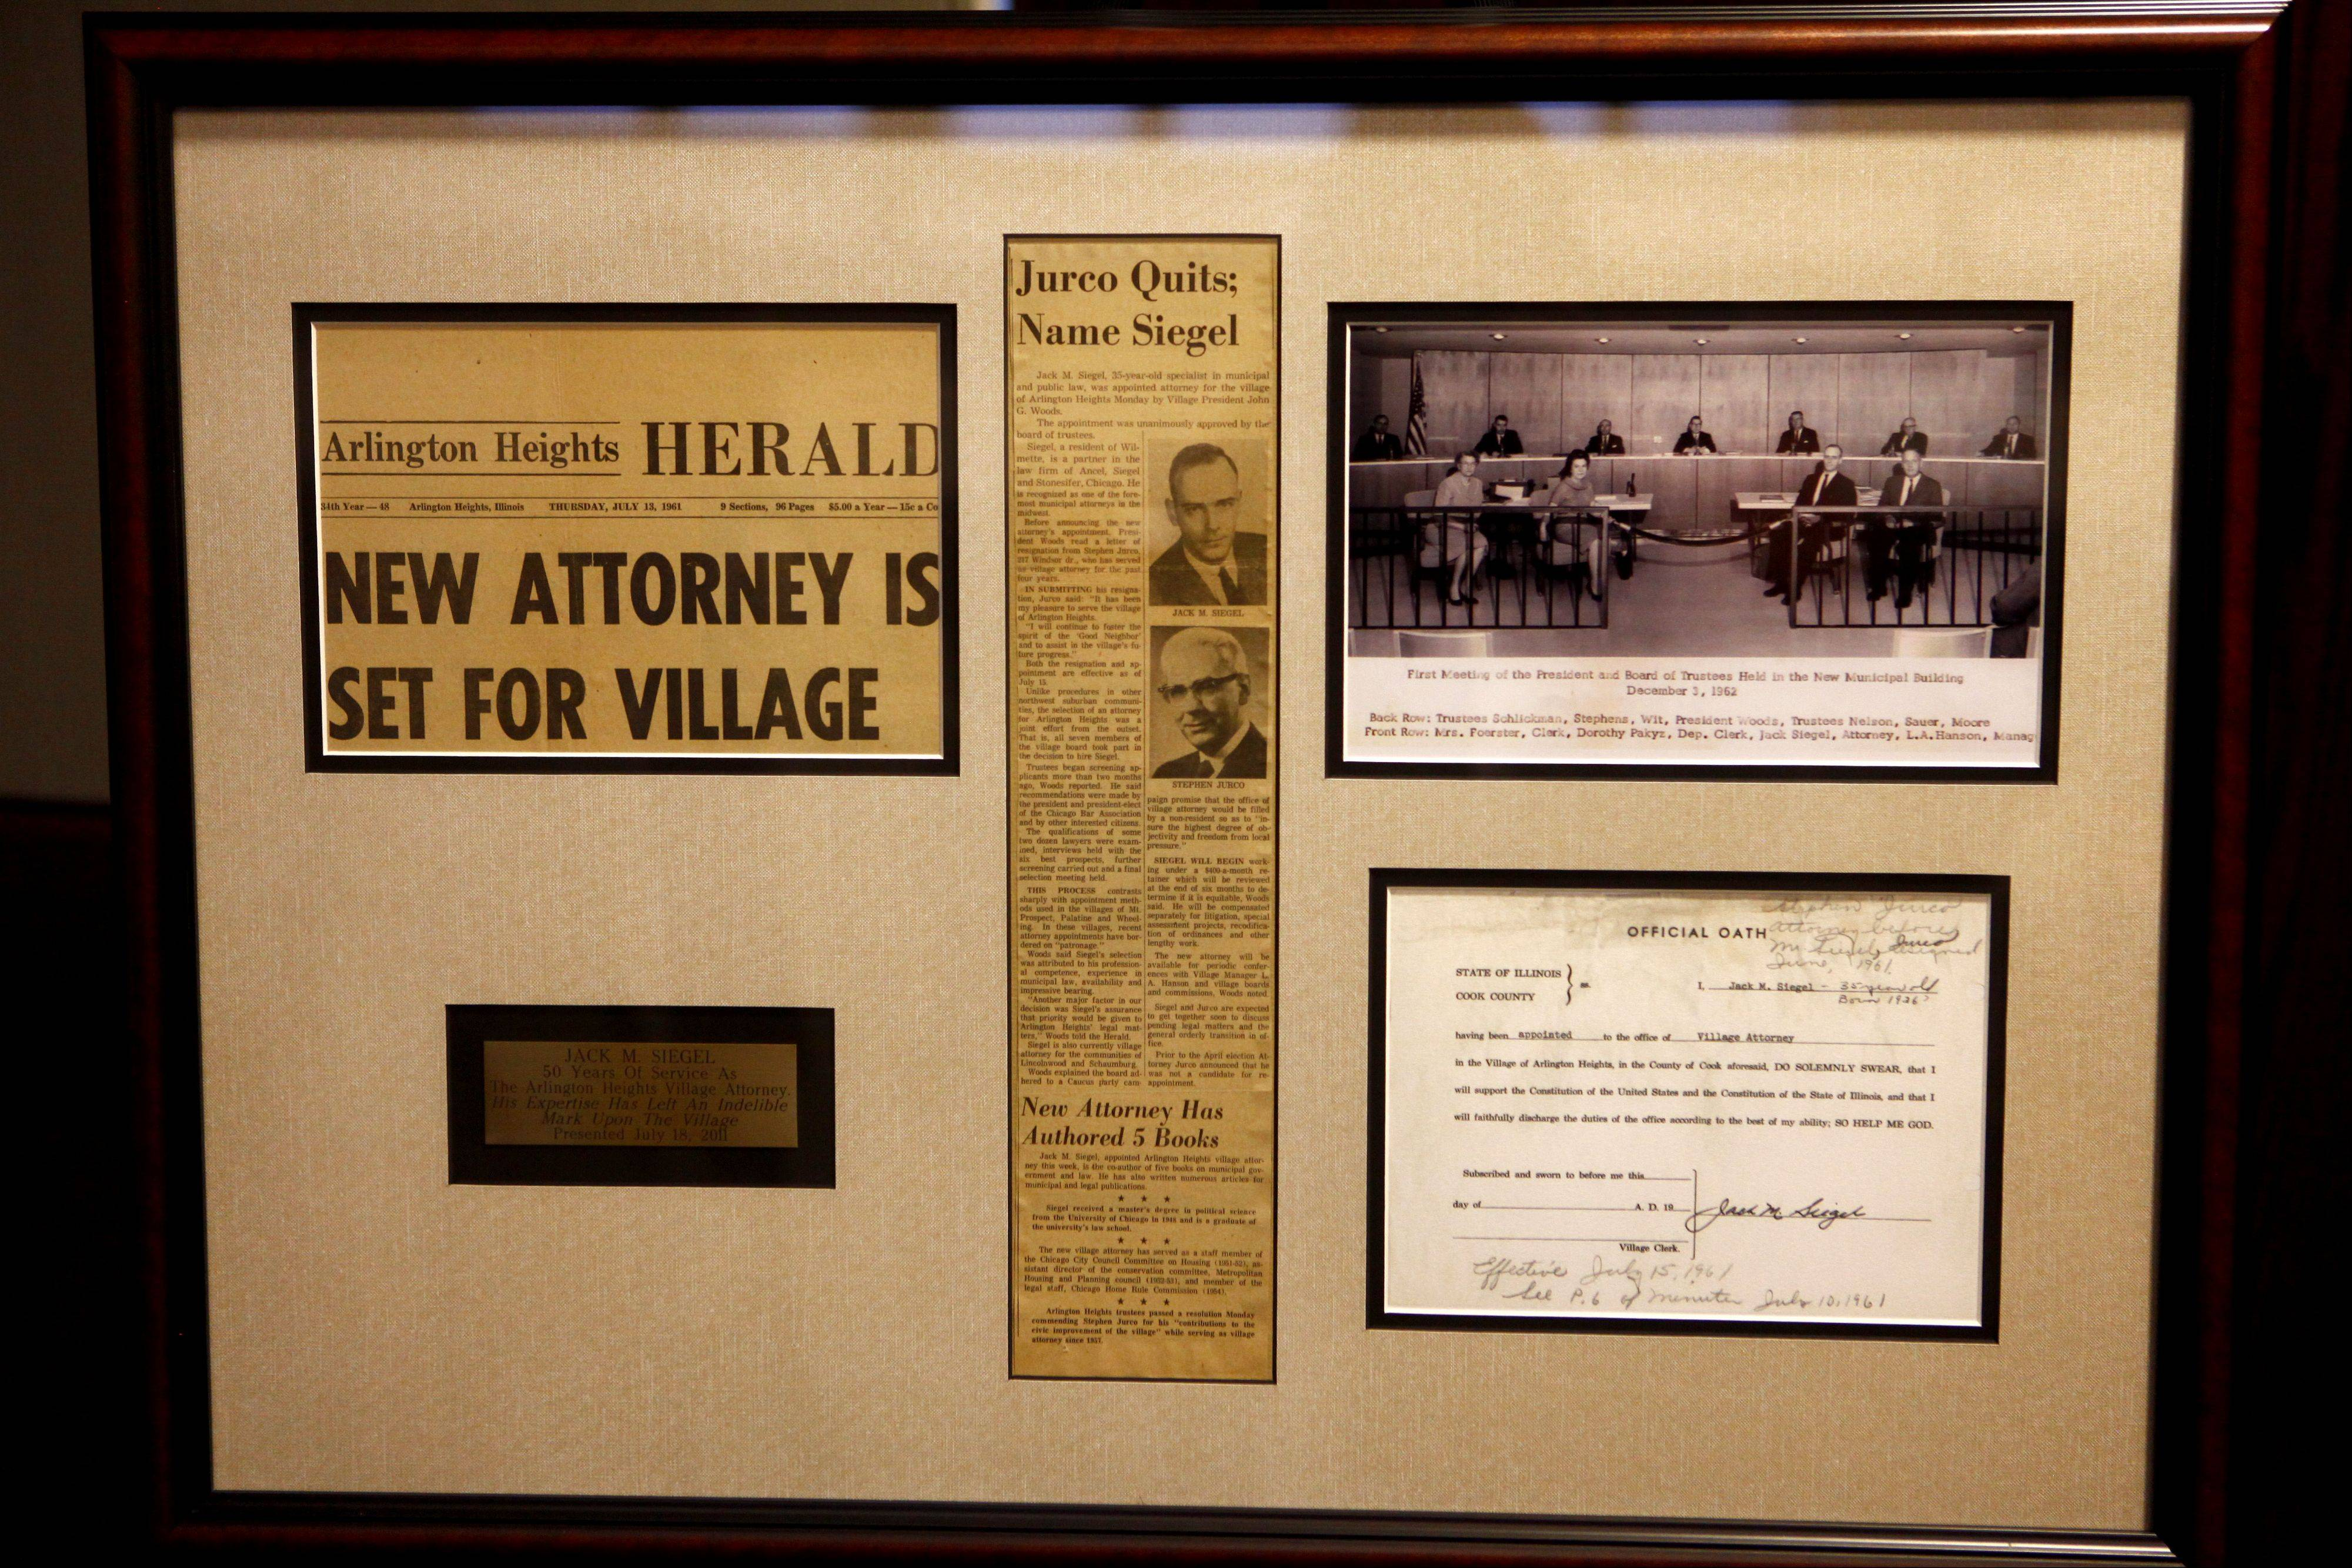 Mementos given to Jack Siegel for 50 years as village attorney include a Herald article announcing his appointment and a photograph of the first Village Board meeting in what was then the new village hall.